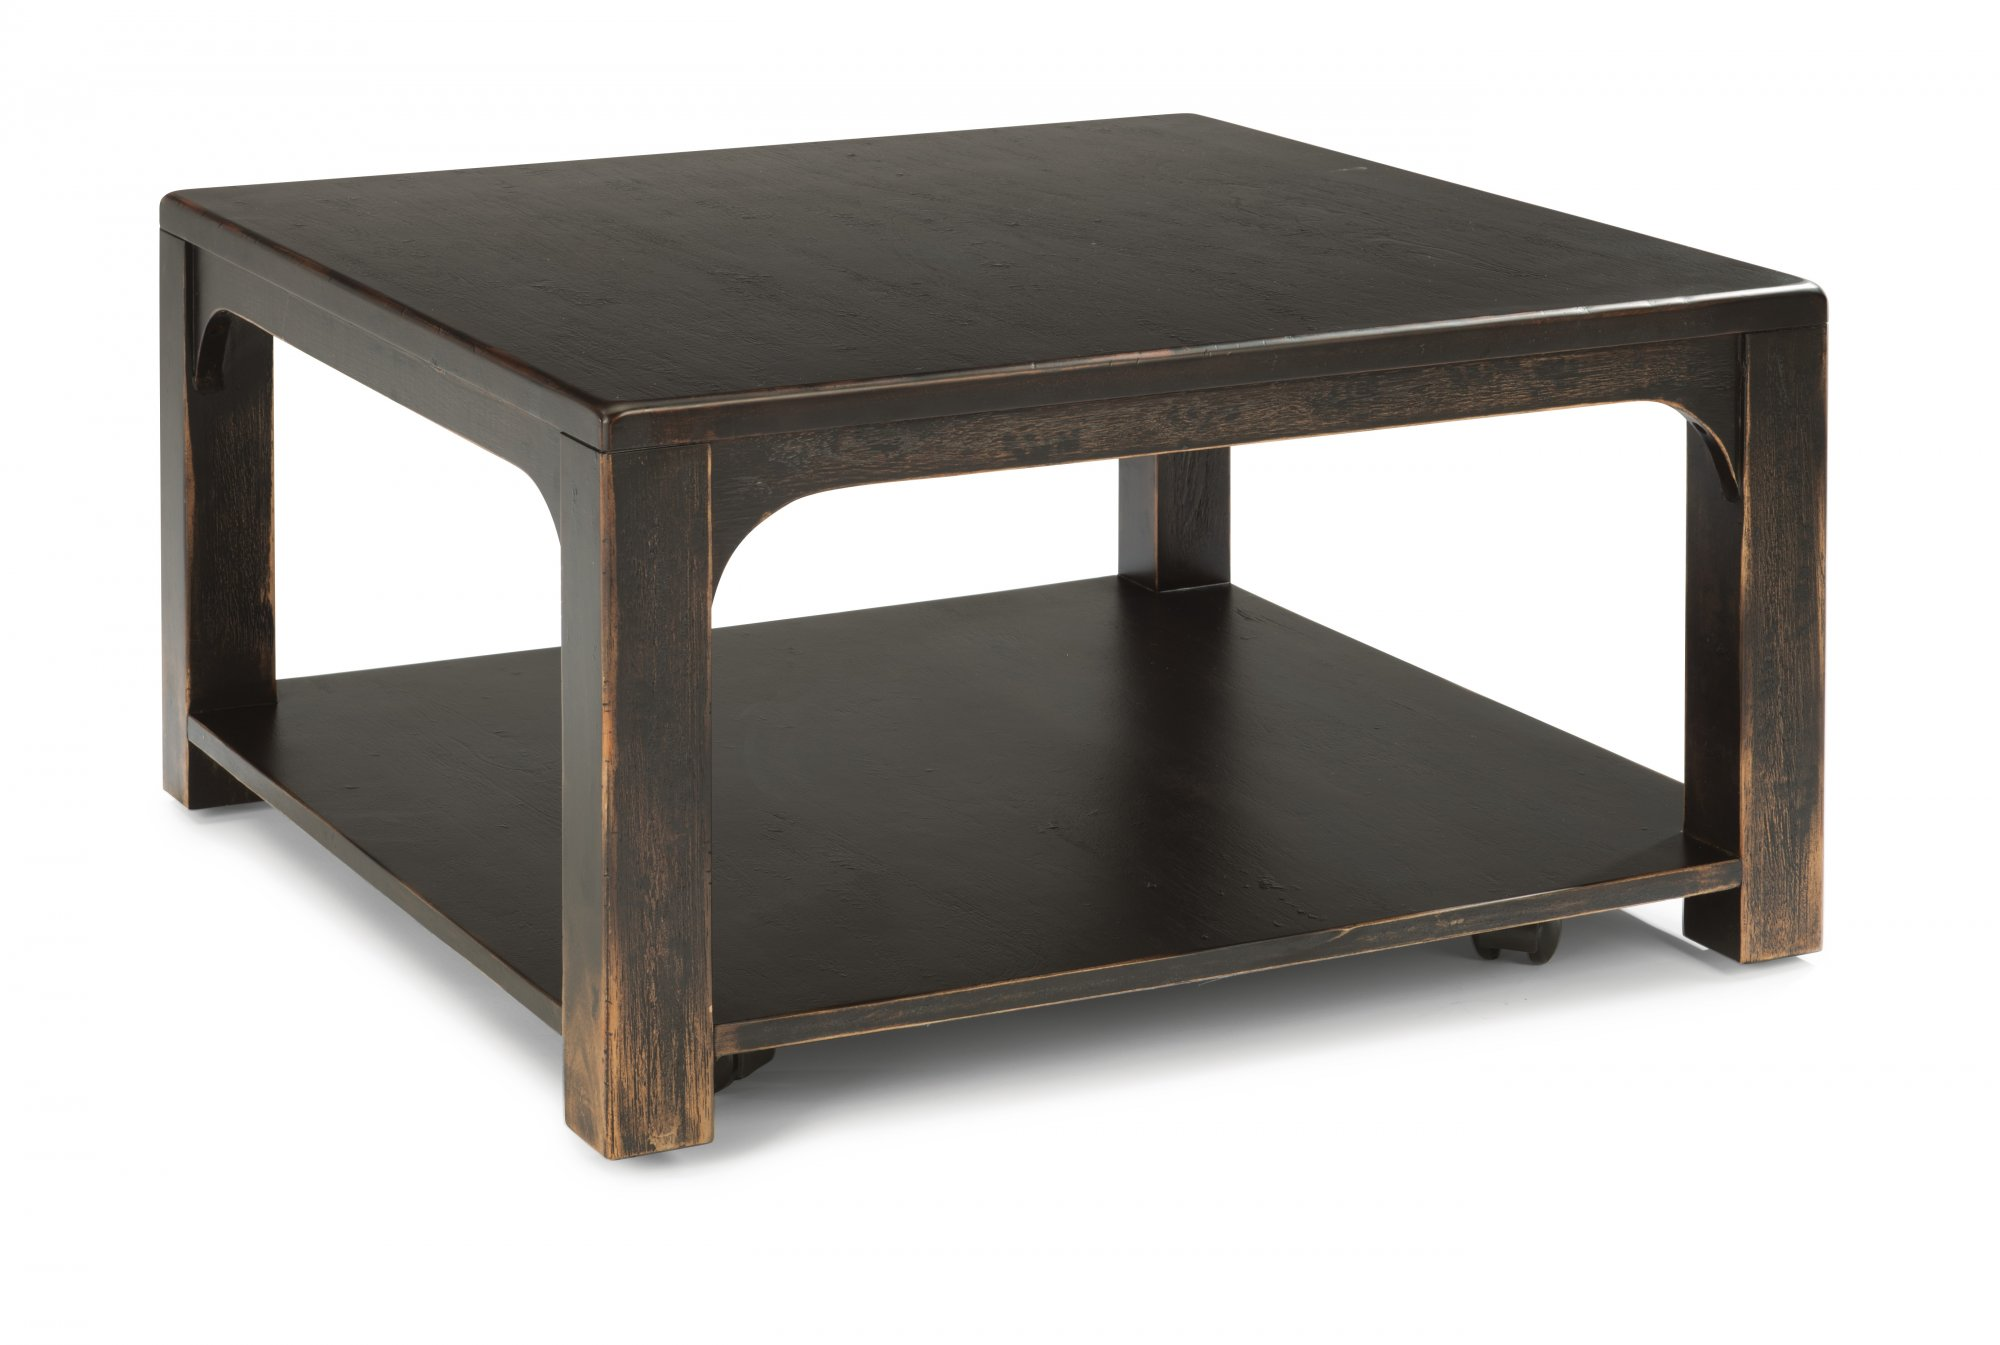 Square Coffee Table. Coffee Tables and Side Tables   End Tables from Flexsteel